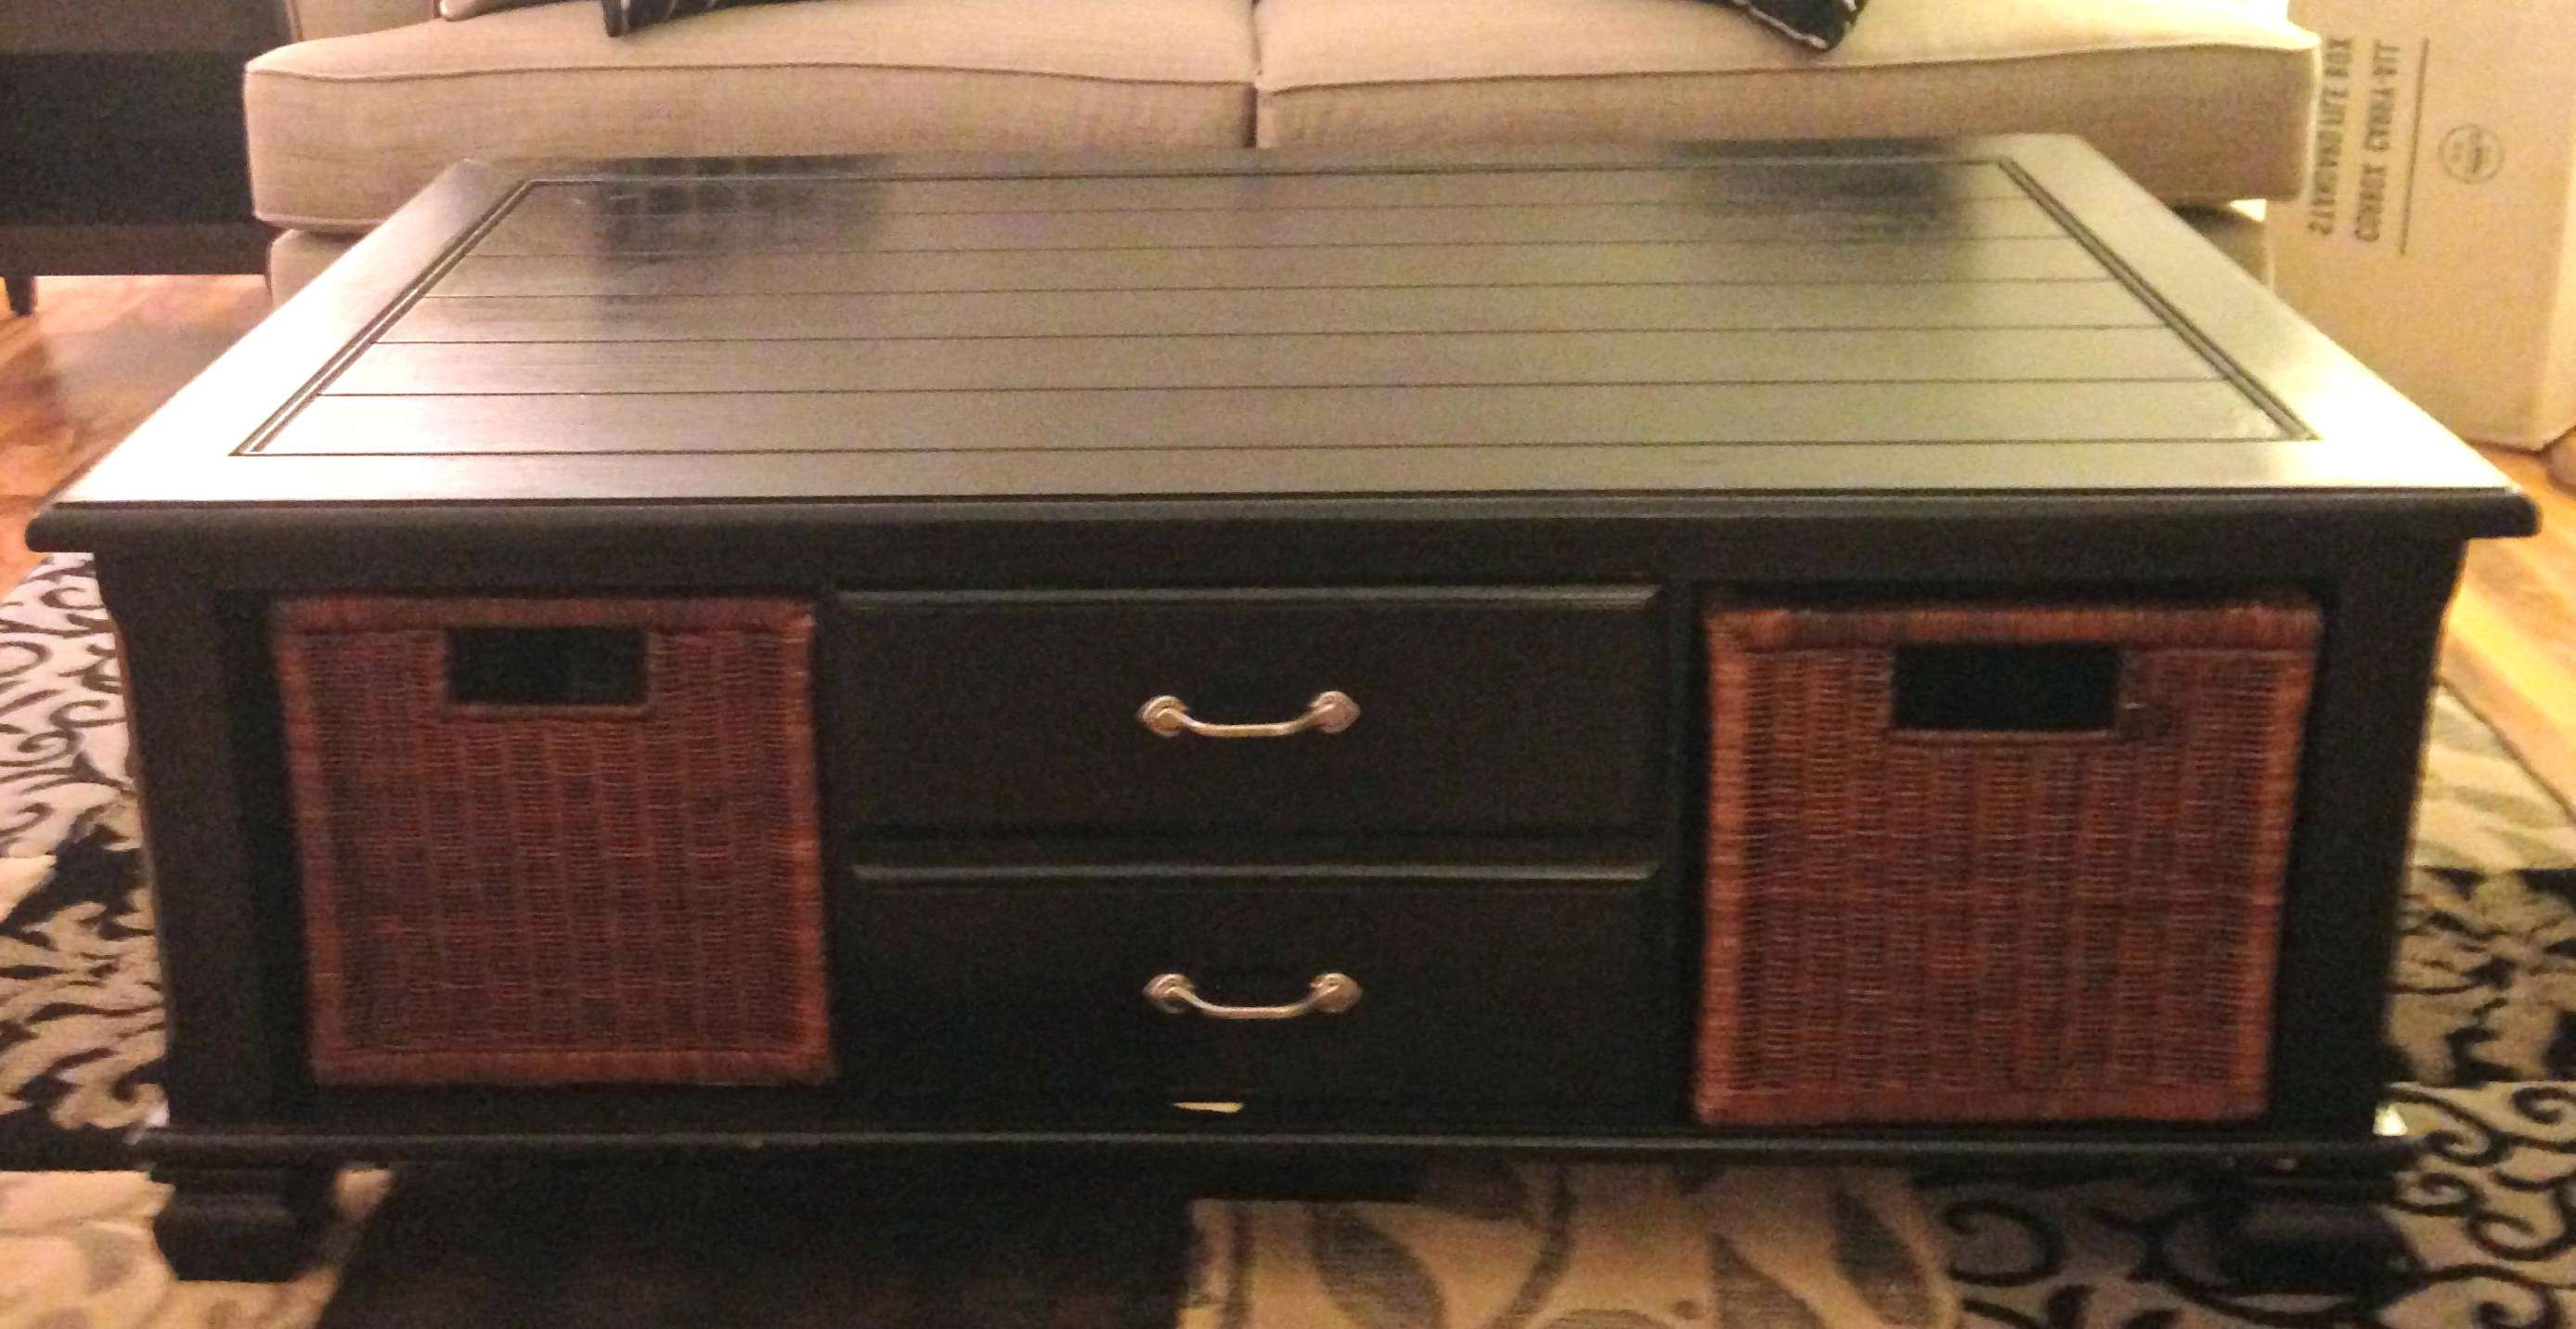 Recent White Coffee Tables With Baskets Regarding Coffee Table: Coffee Table With Baskets (View 17 of 20)